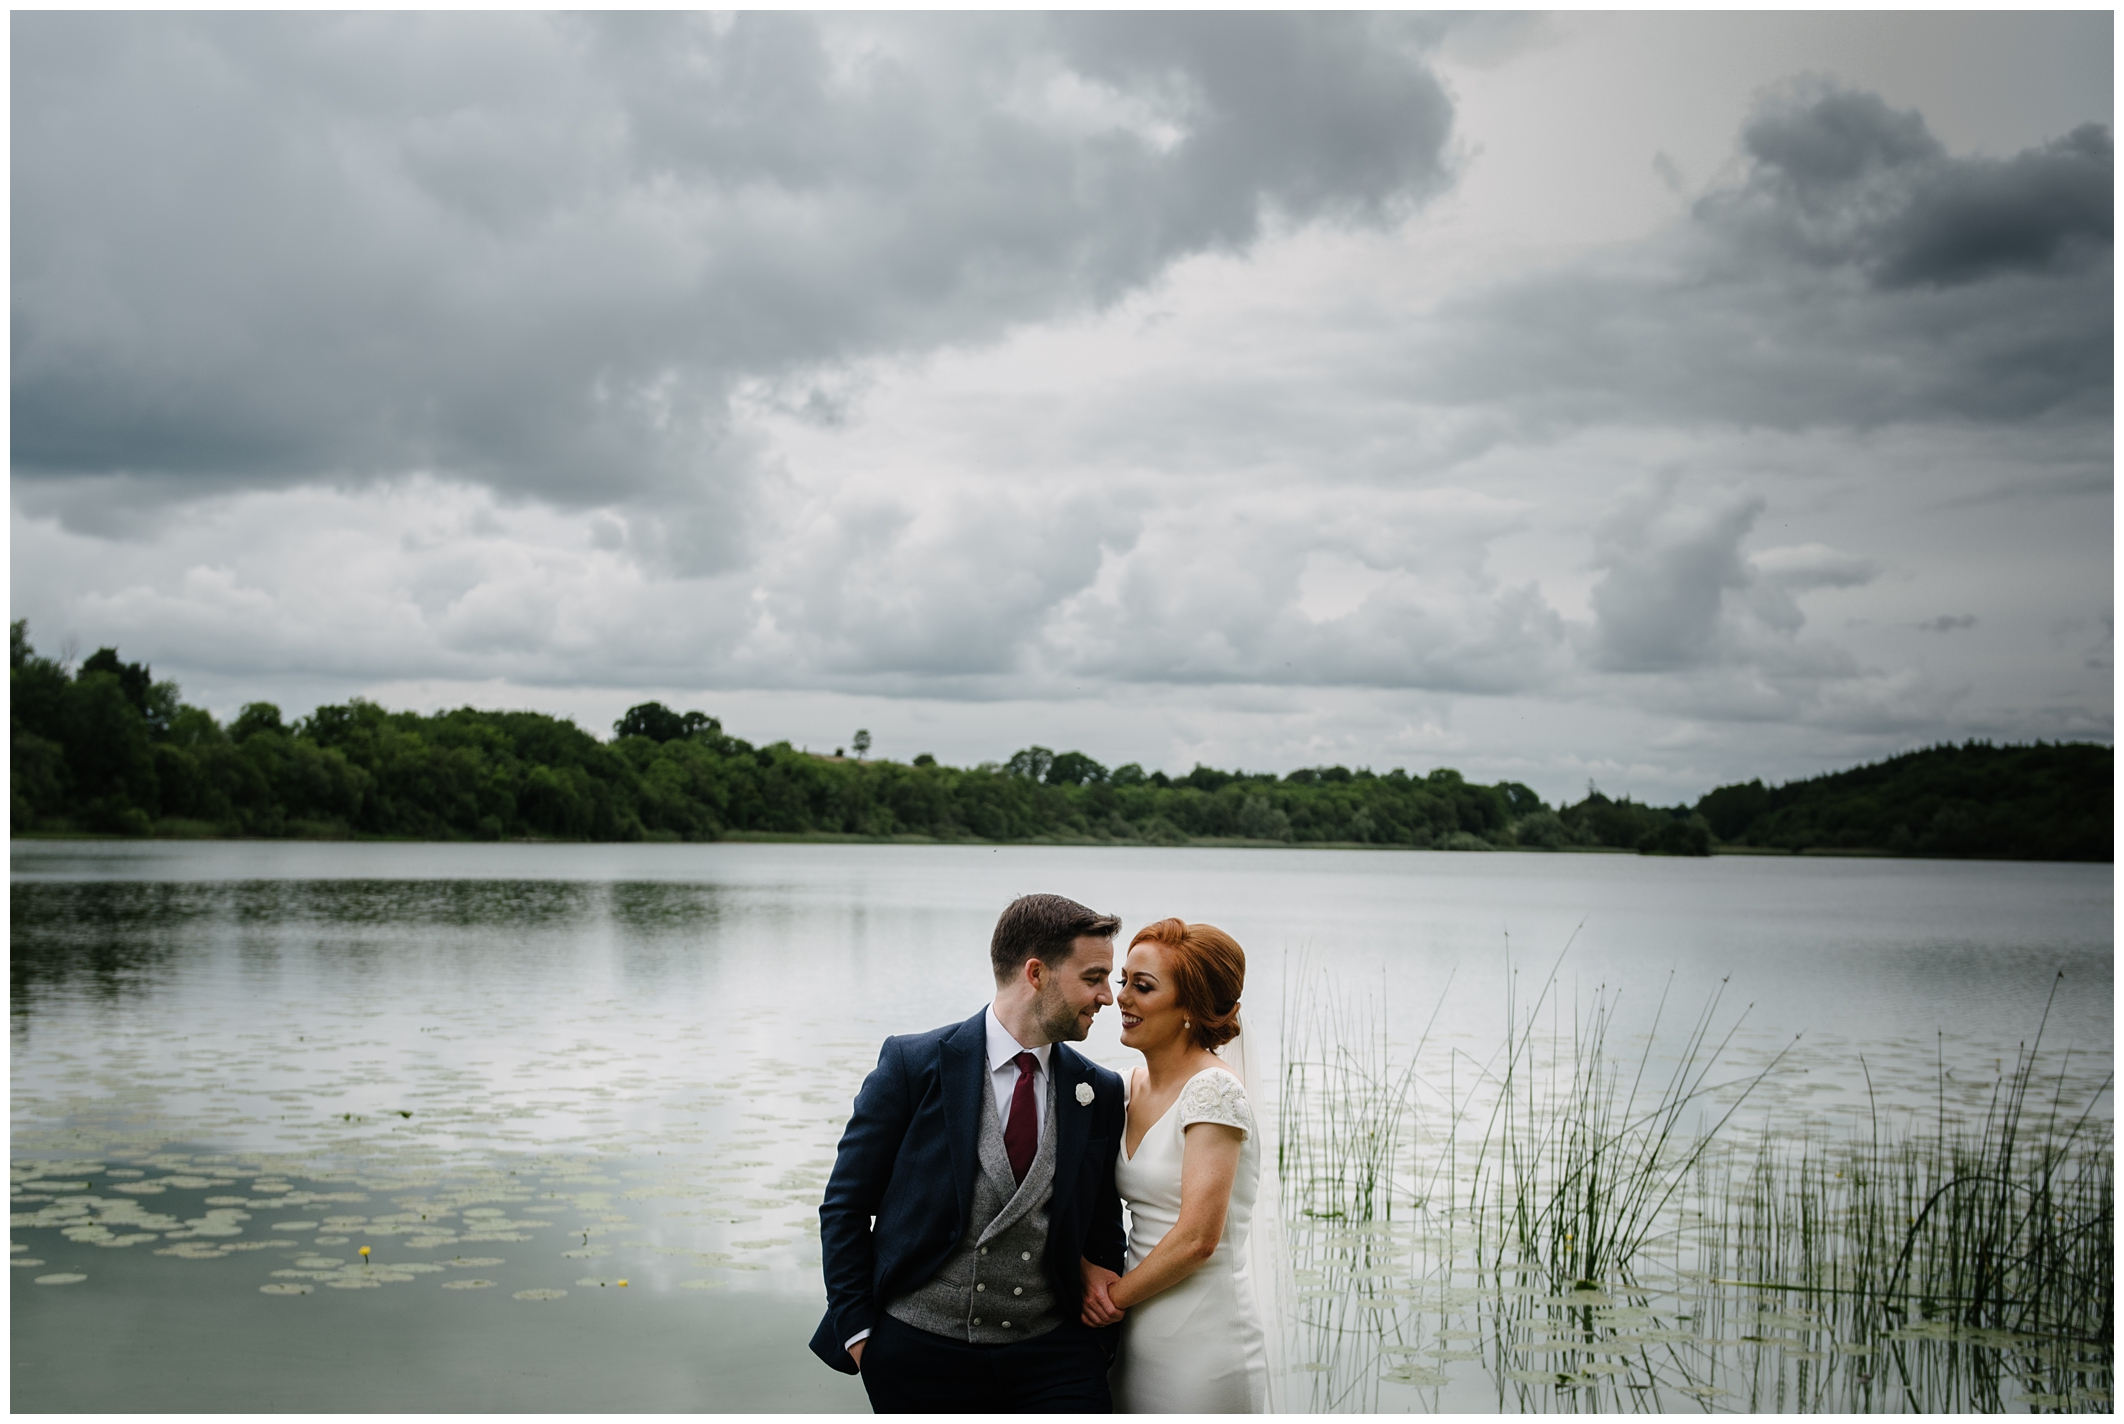 sinead_emmet_farnham_estate_wedding_jude_browne_photography_0122.jpg